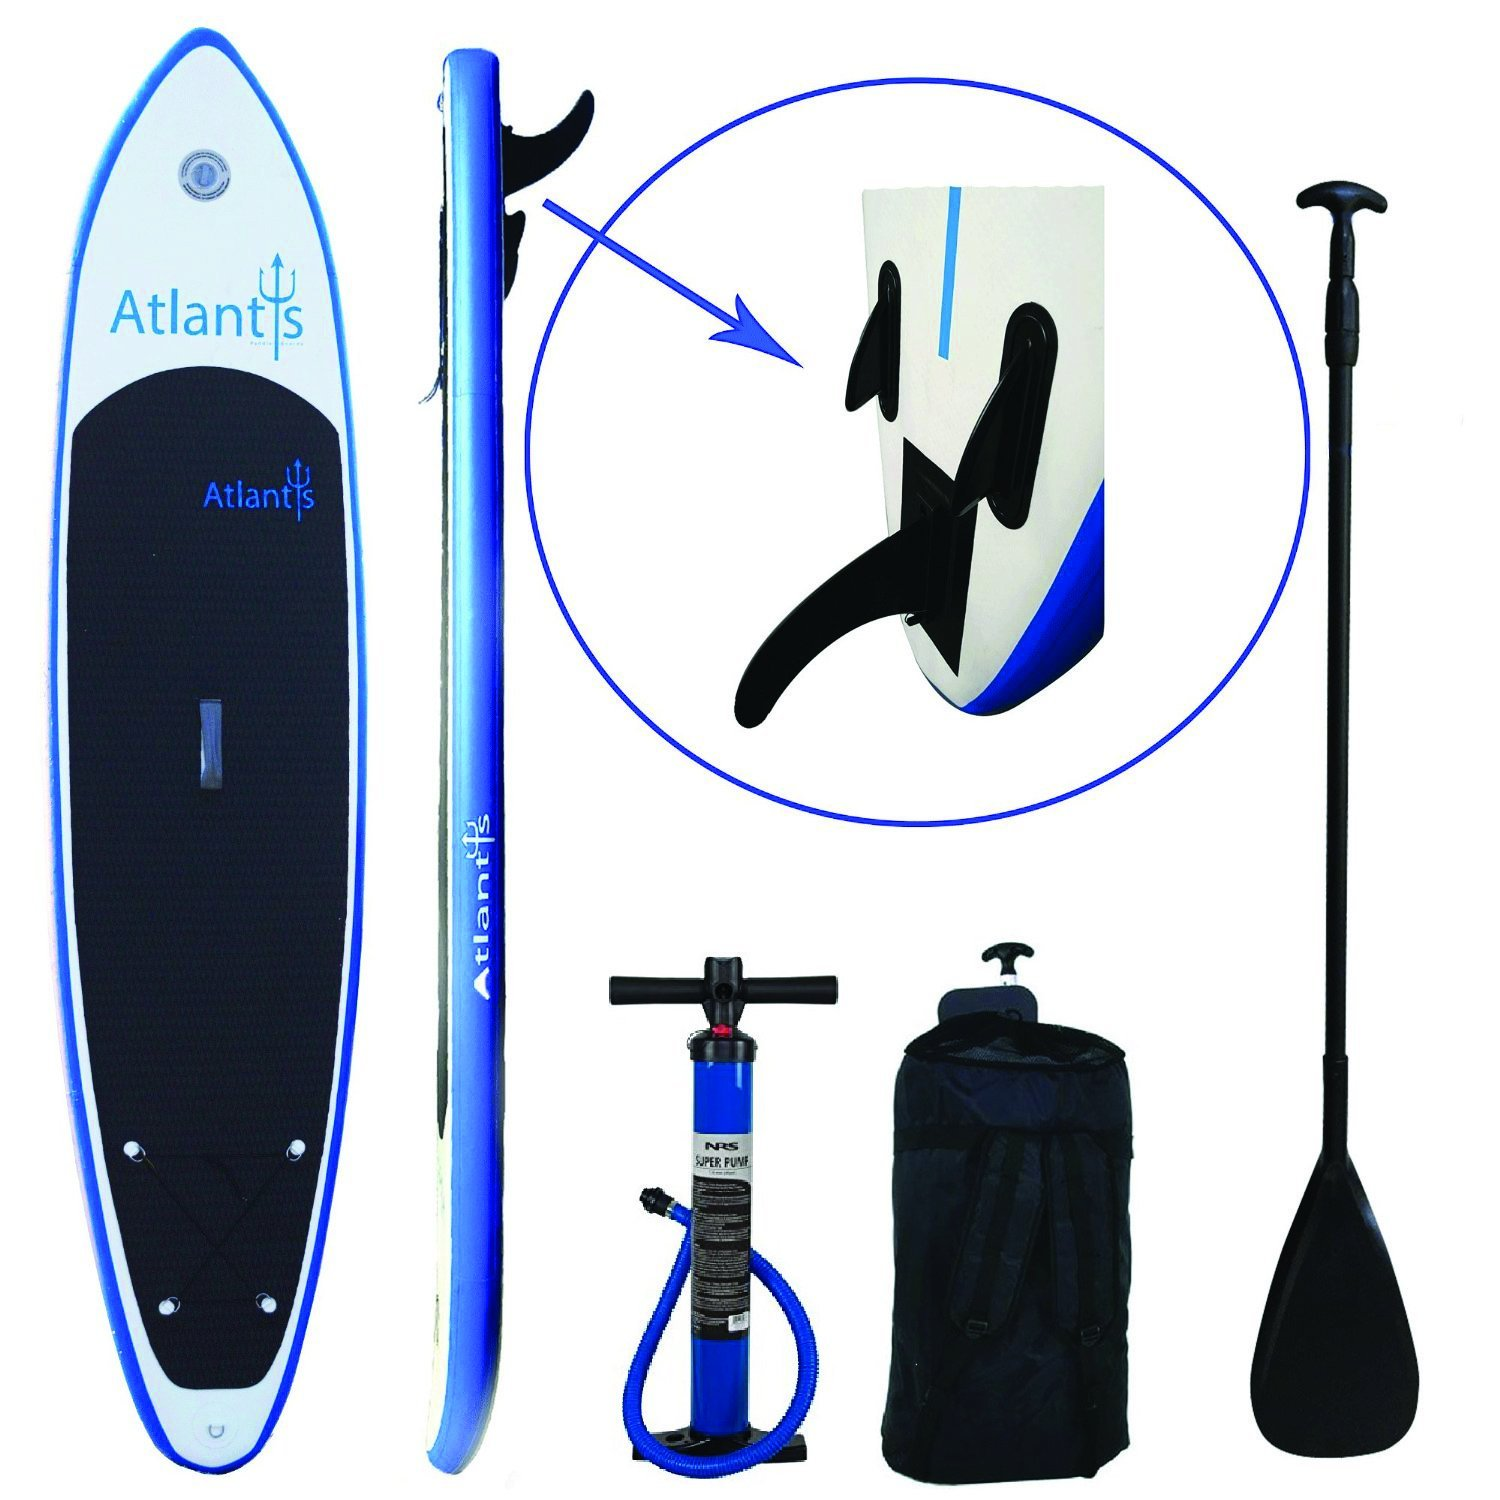 Atlantis Inflatable Stand-up Paddle Board